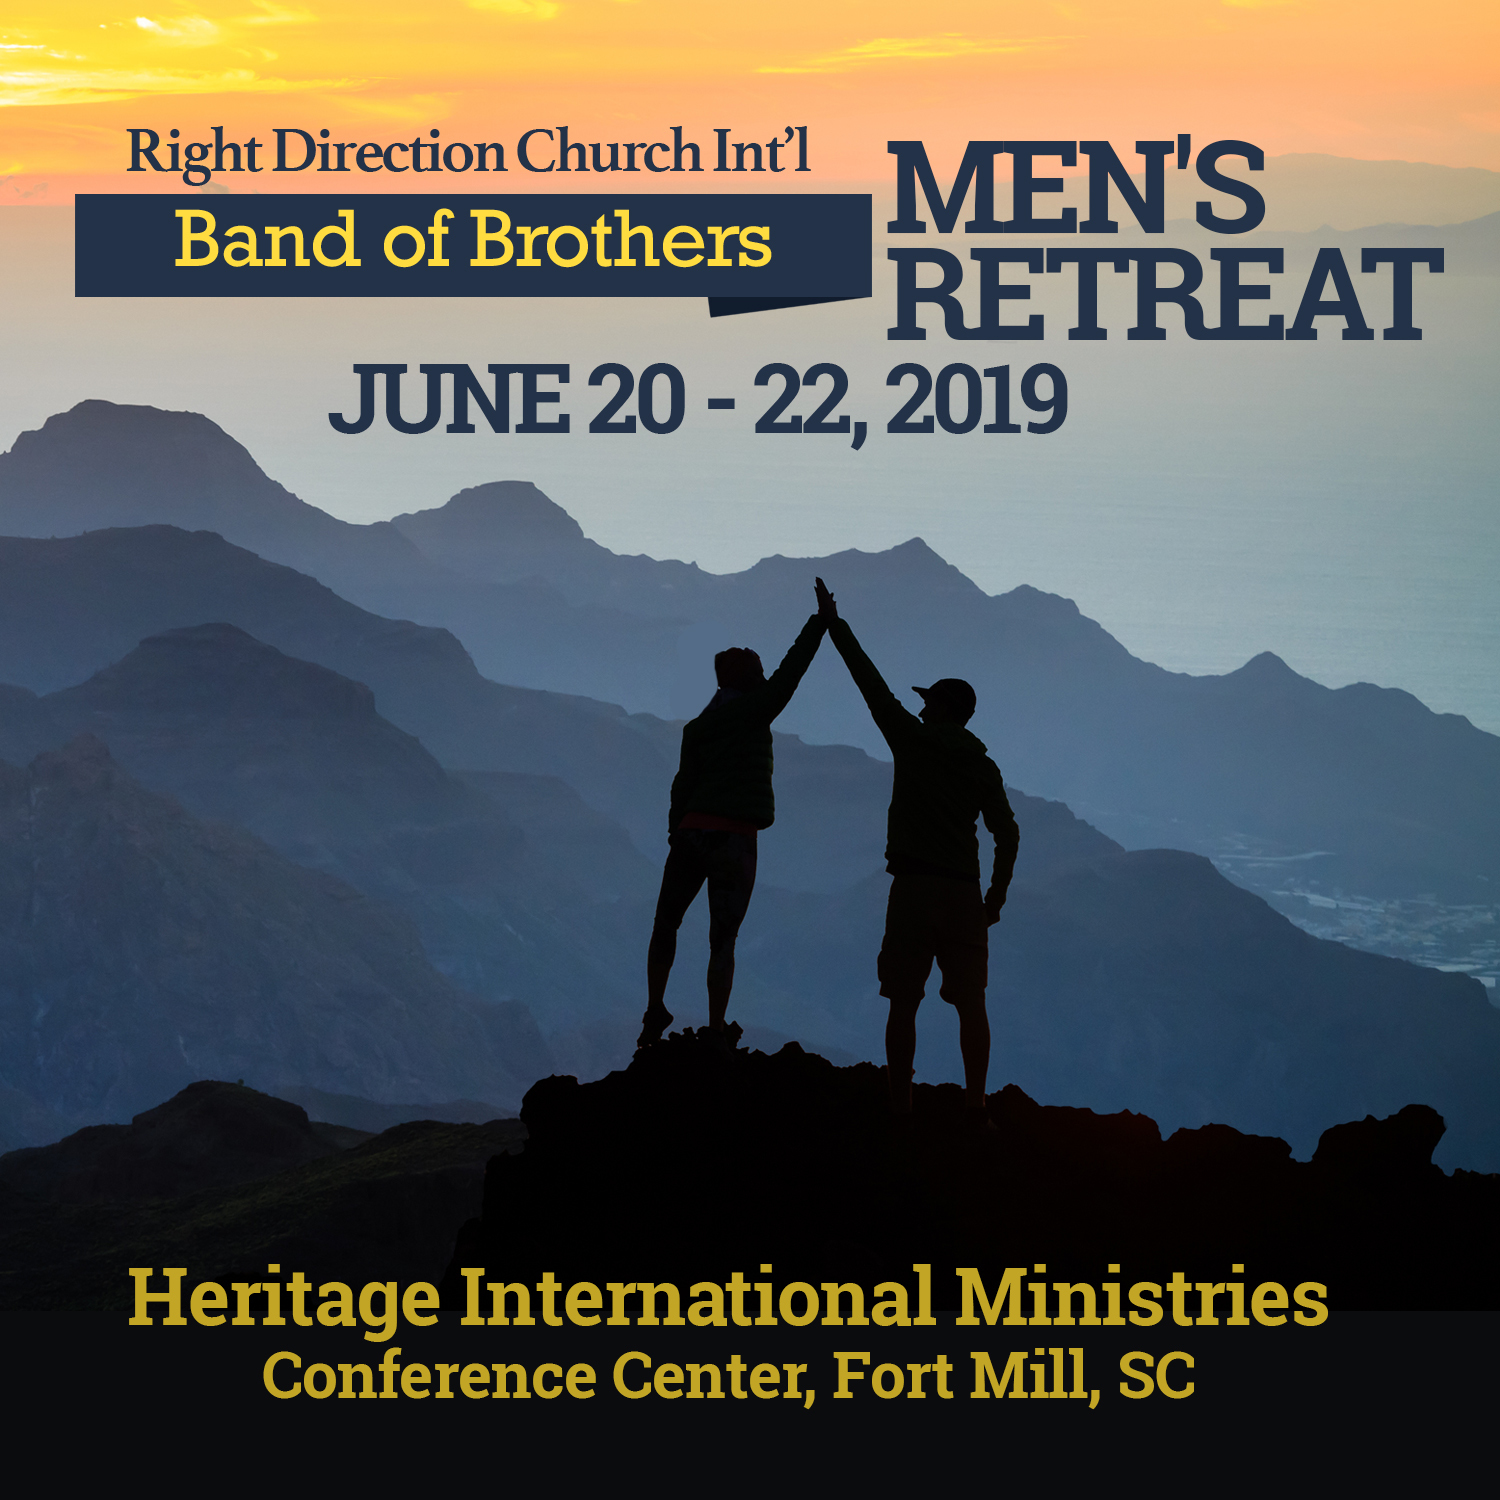 Band of Brothers Men's Retreat - Package B RDCI0041